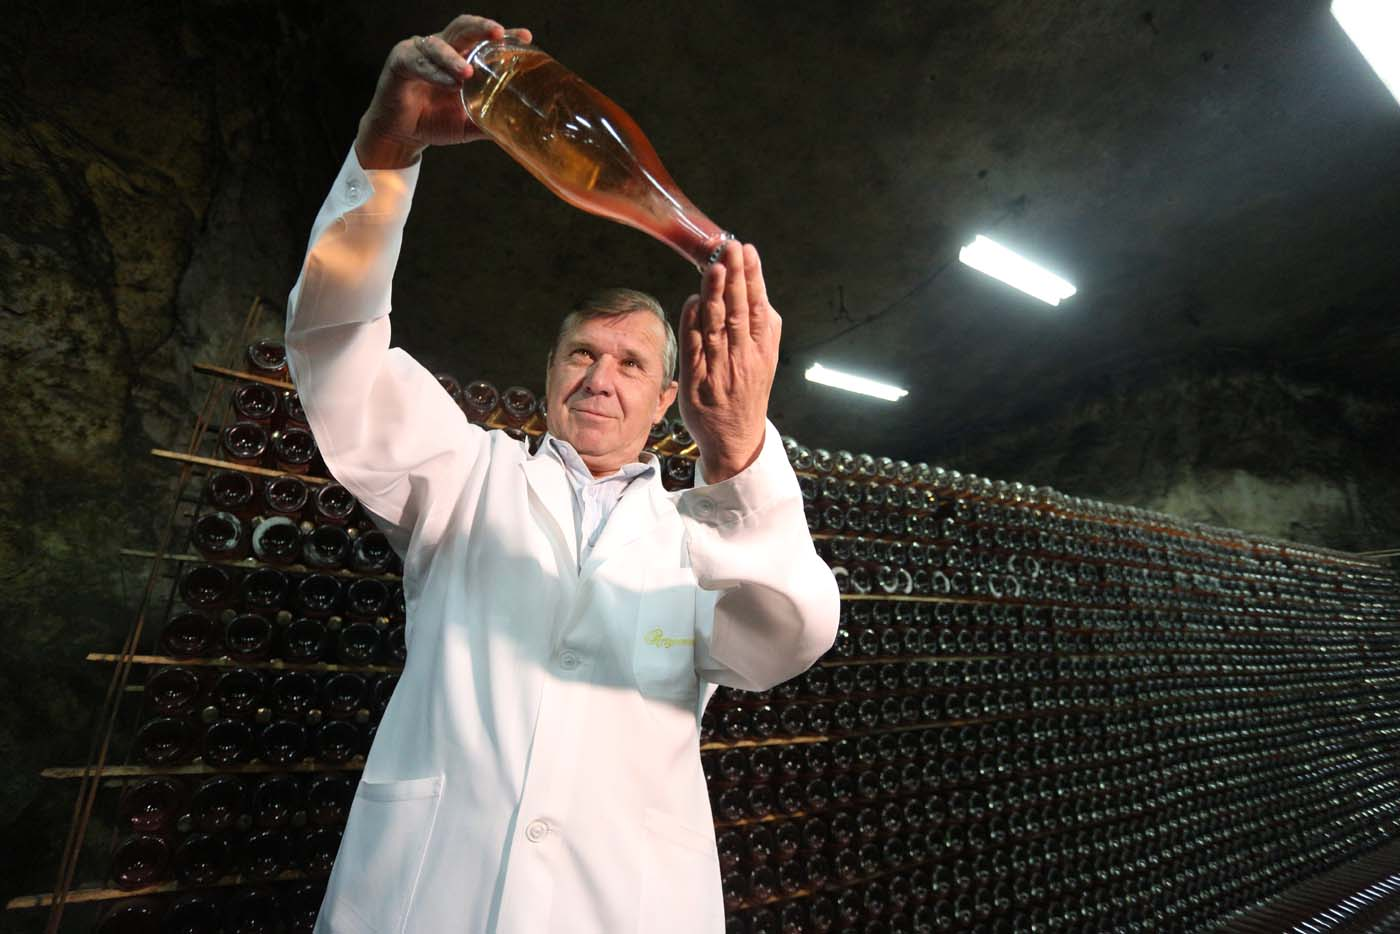 "Winemaker Rafail Nasyrov holds a bottle of wine in the ""Artwinery"" winery firm in the eastern Ukrainian city of Bakhmut on July 12, 2017. The winery is located in a government-held town just two dozen kilometres (15 miles) from the frontline in Ukraine's low-level war, where the army and Russian-backed rebels continue to lob deadly artillery barrages at each other. The town spent around a month under rebel control in 2014, and in 2015 the frontline was so close that the town came under rebel shelling. But despite more than three years of fighting that has claimed some 10,000 lives, Nasyrov's employer, Artwinery, has never stopped production. / AFP PHOTO / Aleksey FILIPPOV"